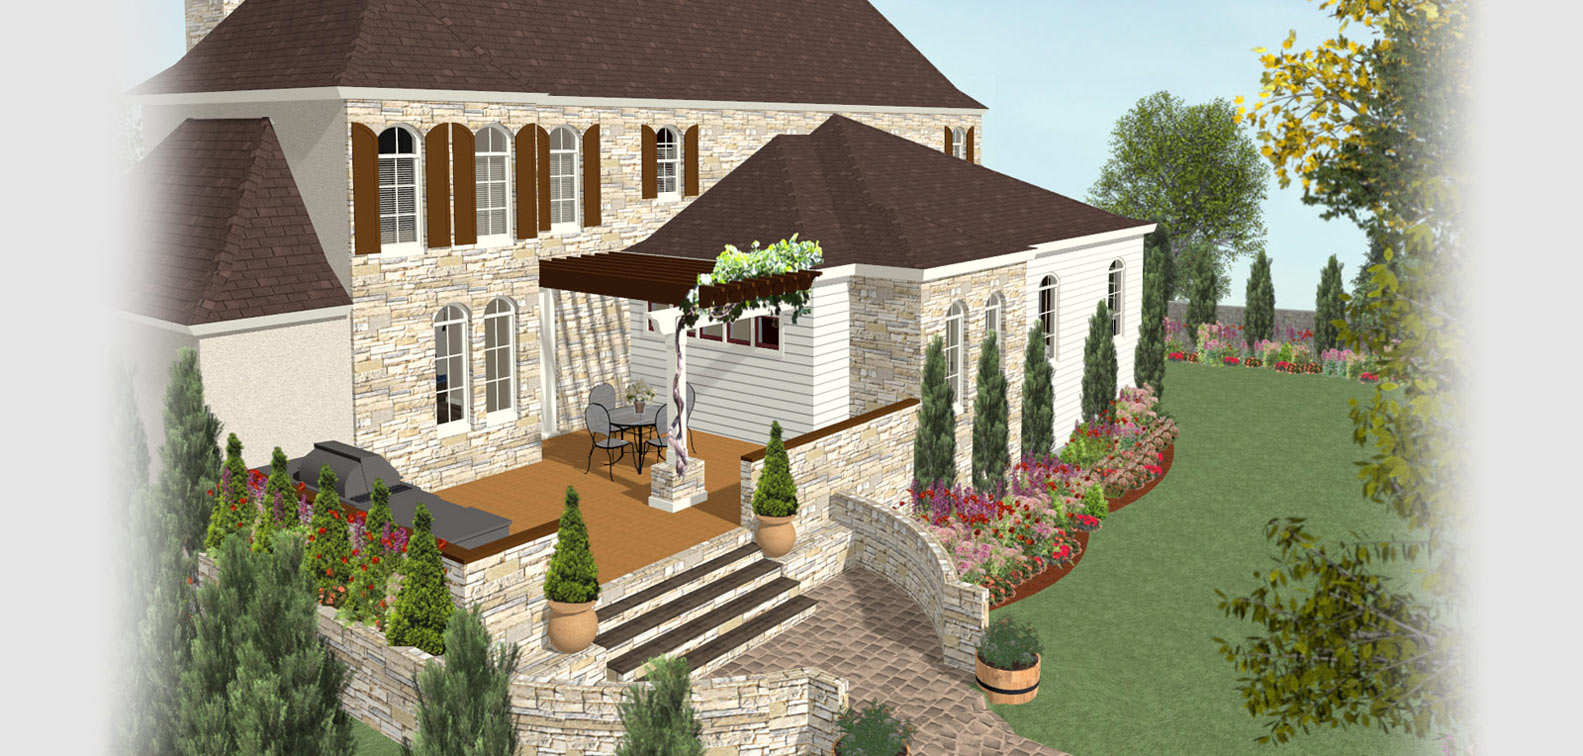 A Backyard Deck With Landscaping. Deck Designer Tools